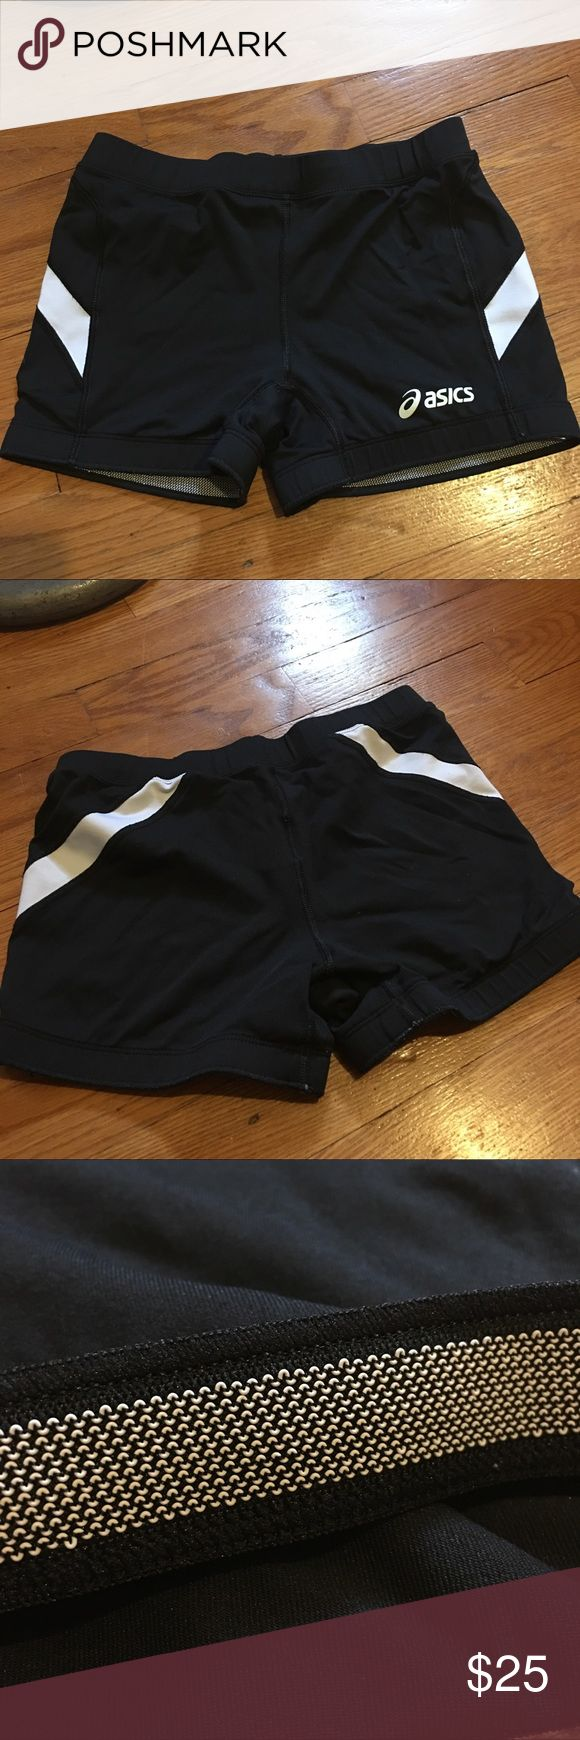 Asics running spandex shorts Size small, black and white, barely worn Asics Shorts